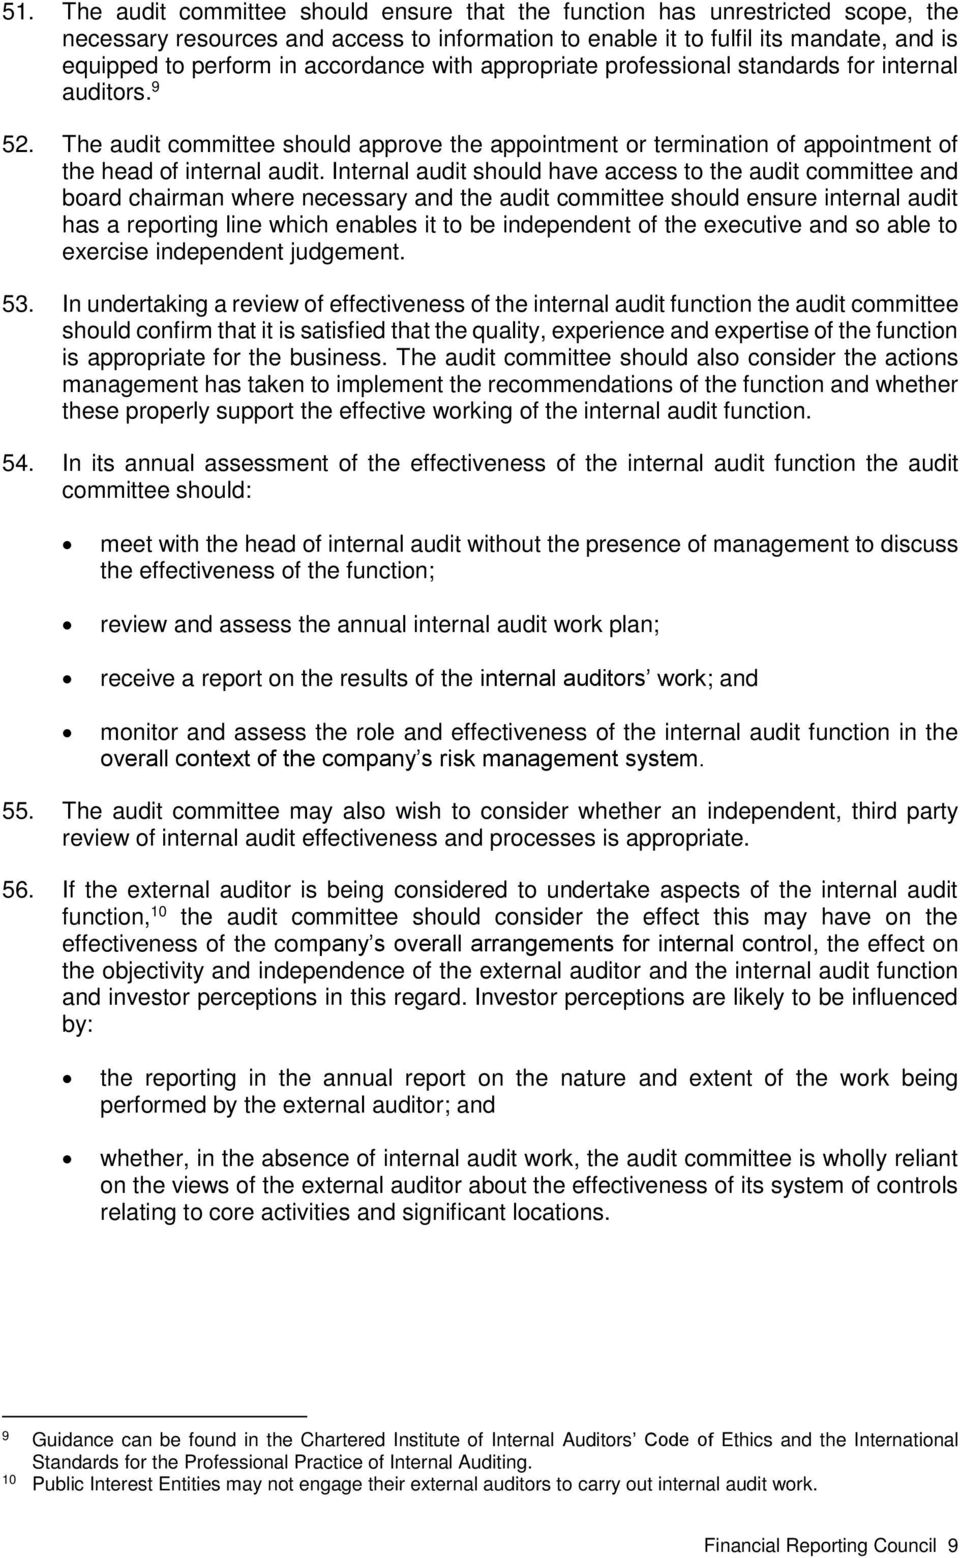 Internal audit should have access to the audit committee and board chairman where necessary and the audit committee should ensure internal audit has a reporting line which enables it to be